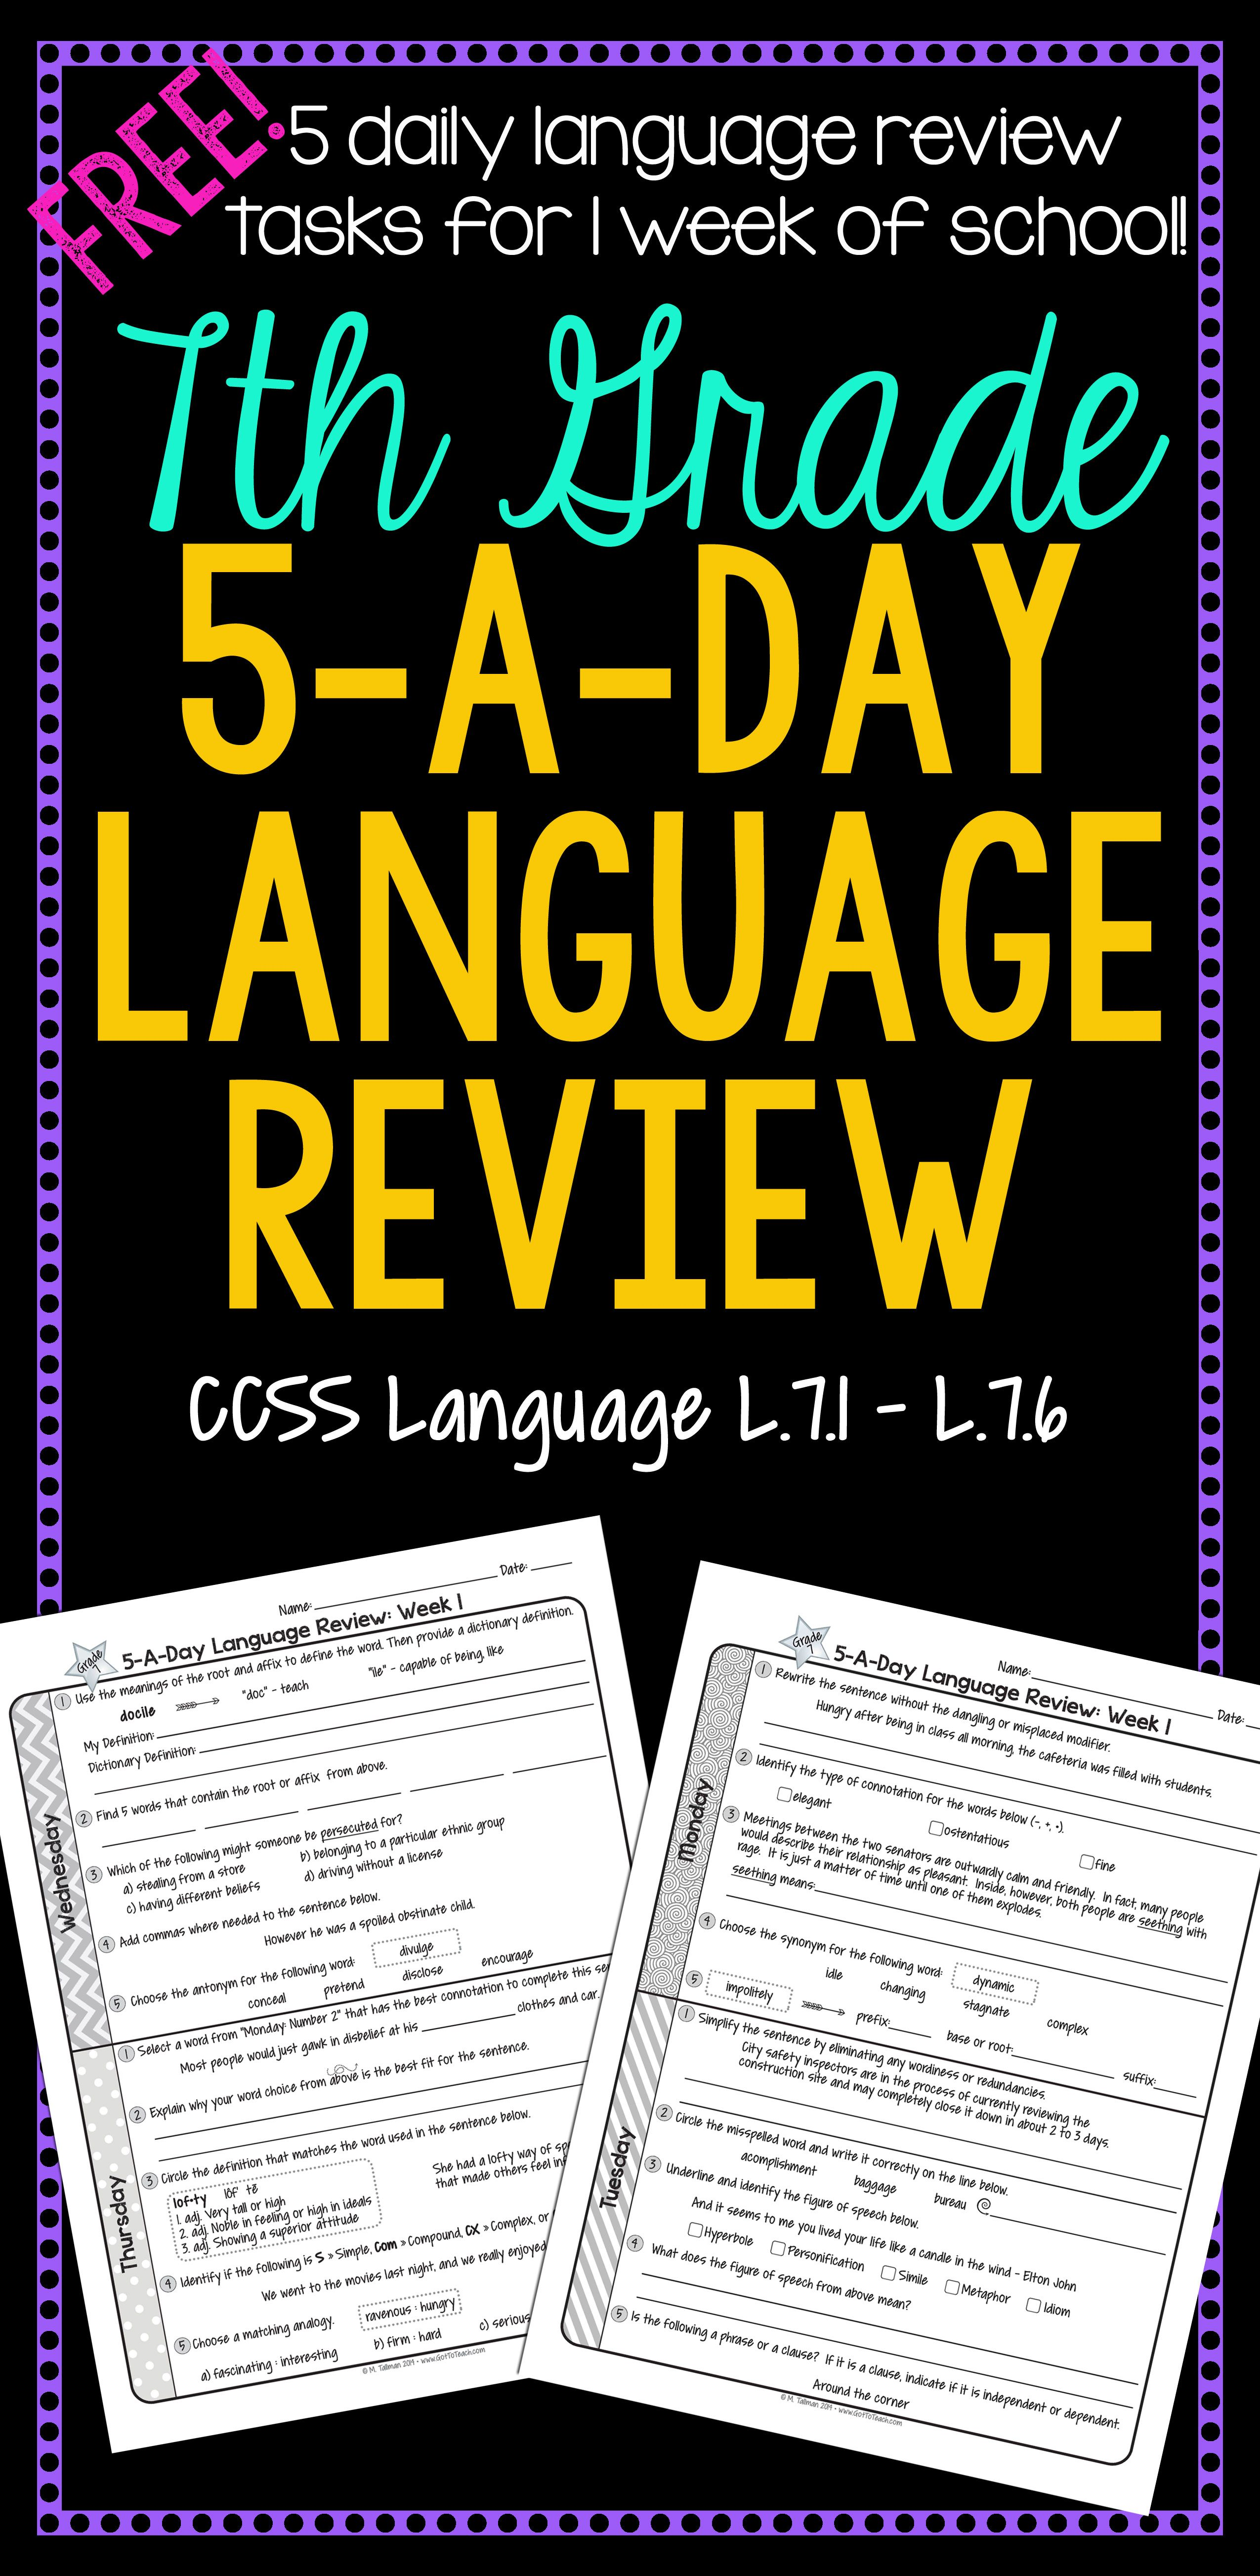 7th Grade Daily Language Review